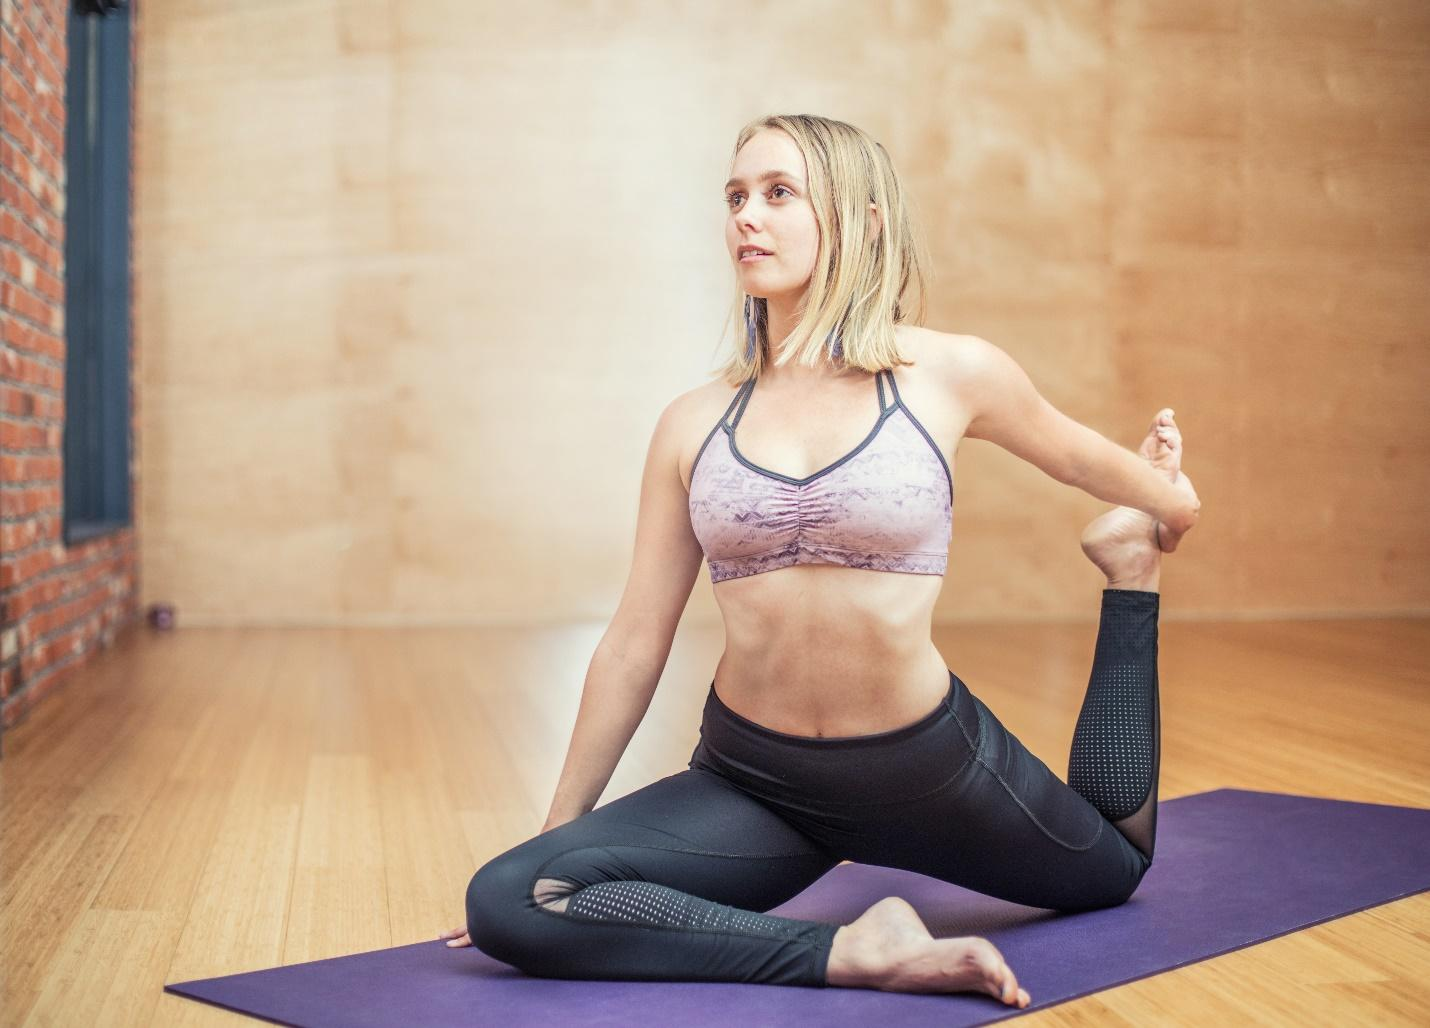 5 Easy Target Exercises to Lose Belly Fat - Yoga